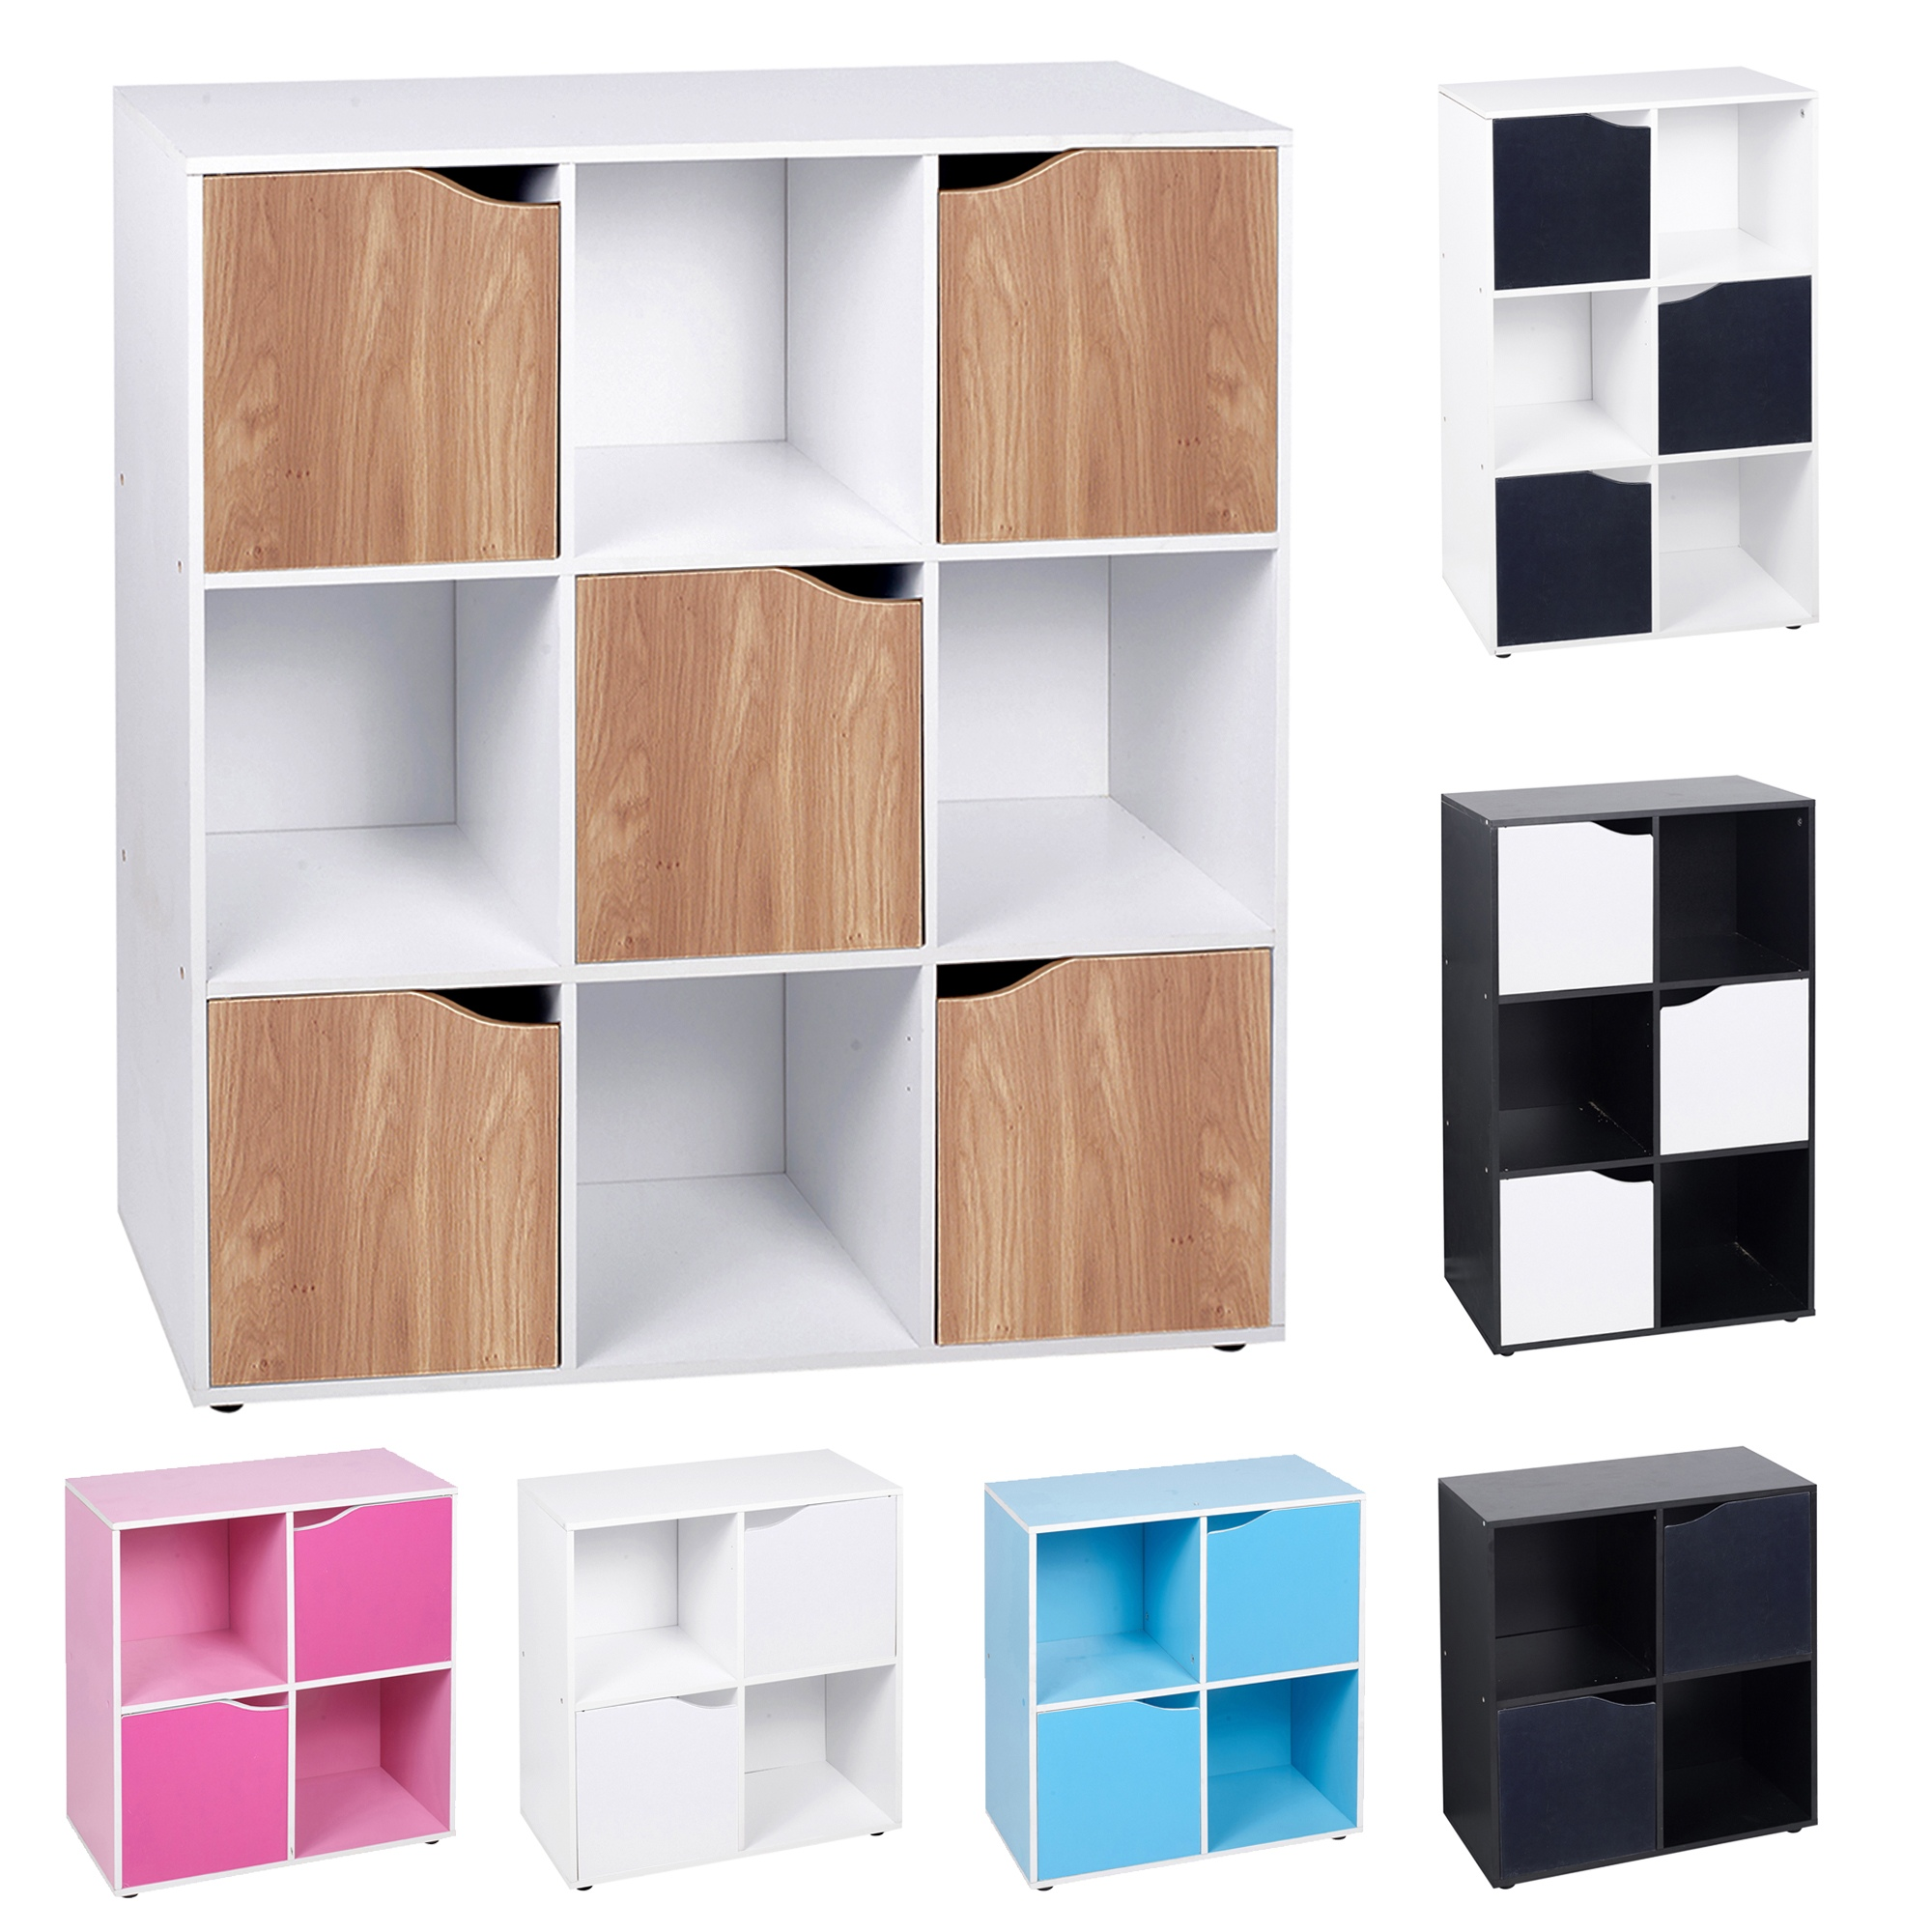 4//6//9 Cube Wooden Standing Unit Shelf Storing Books CDs/&DVDs Storage Office Home